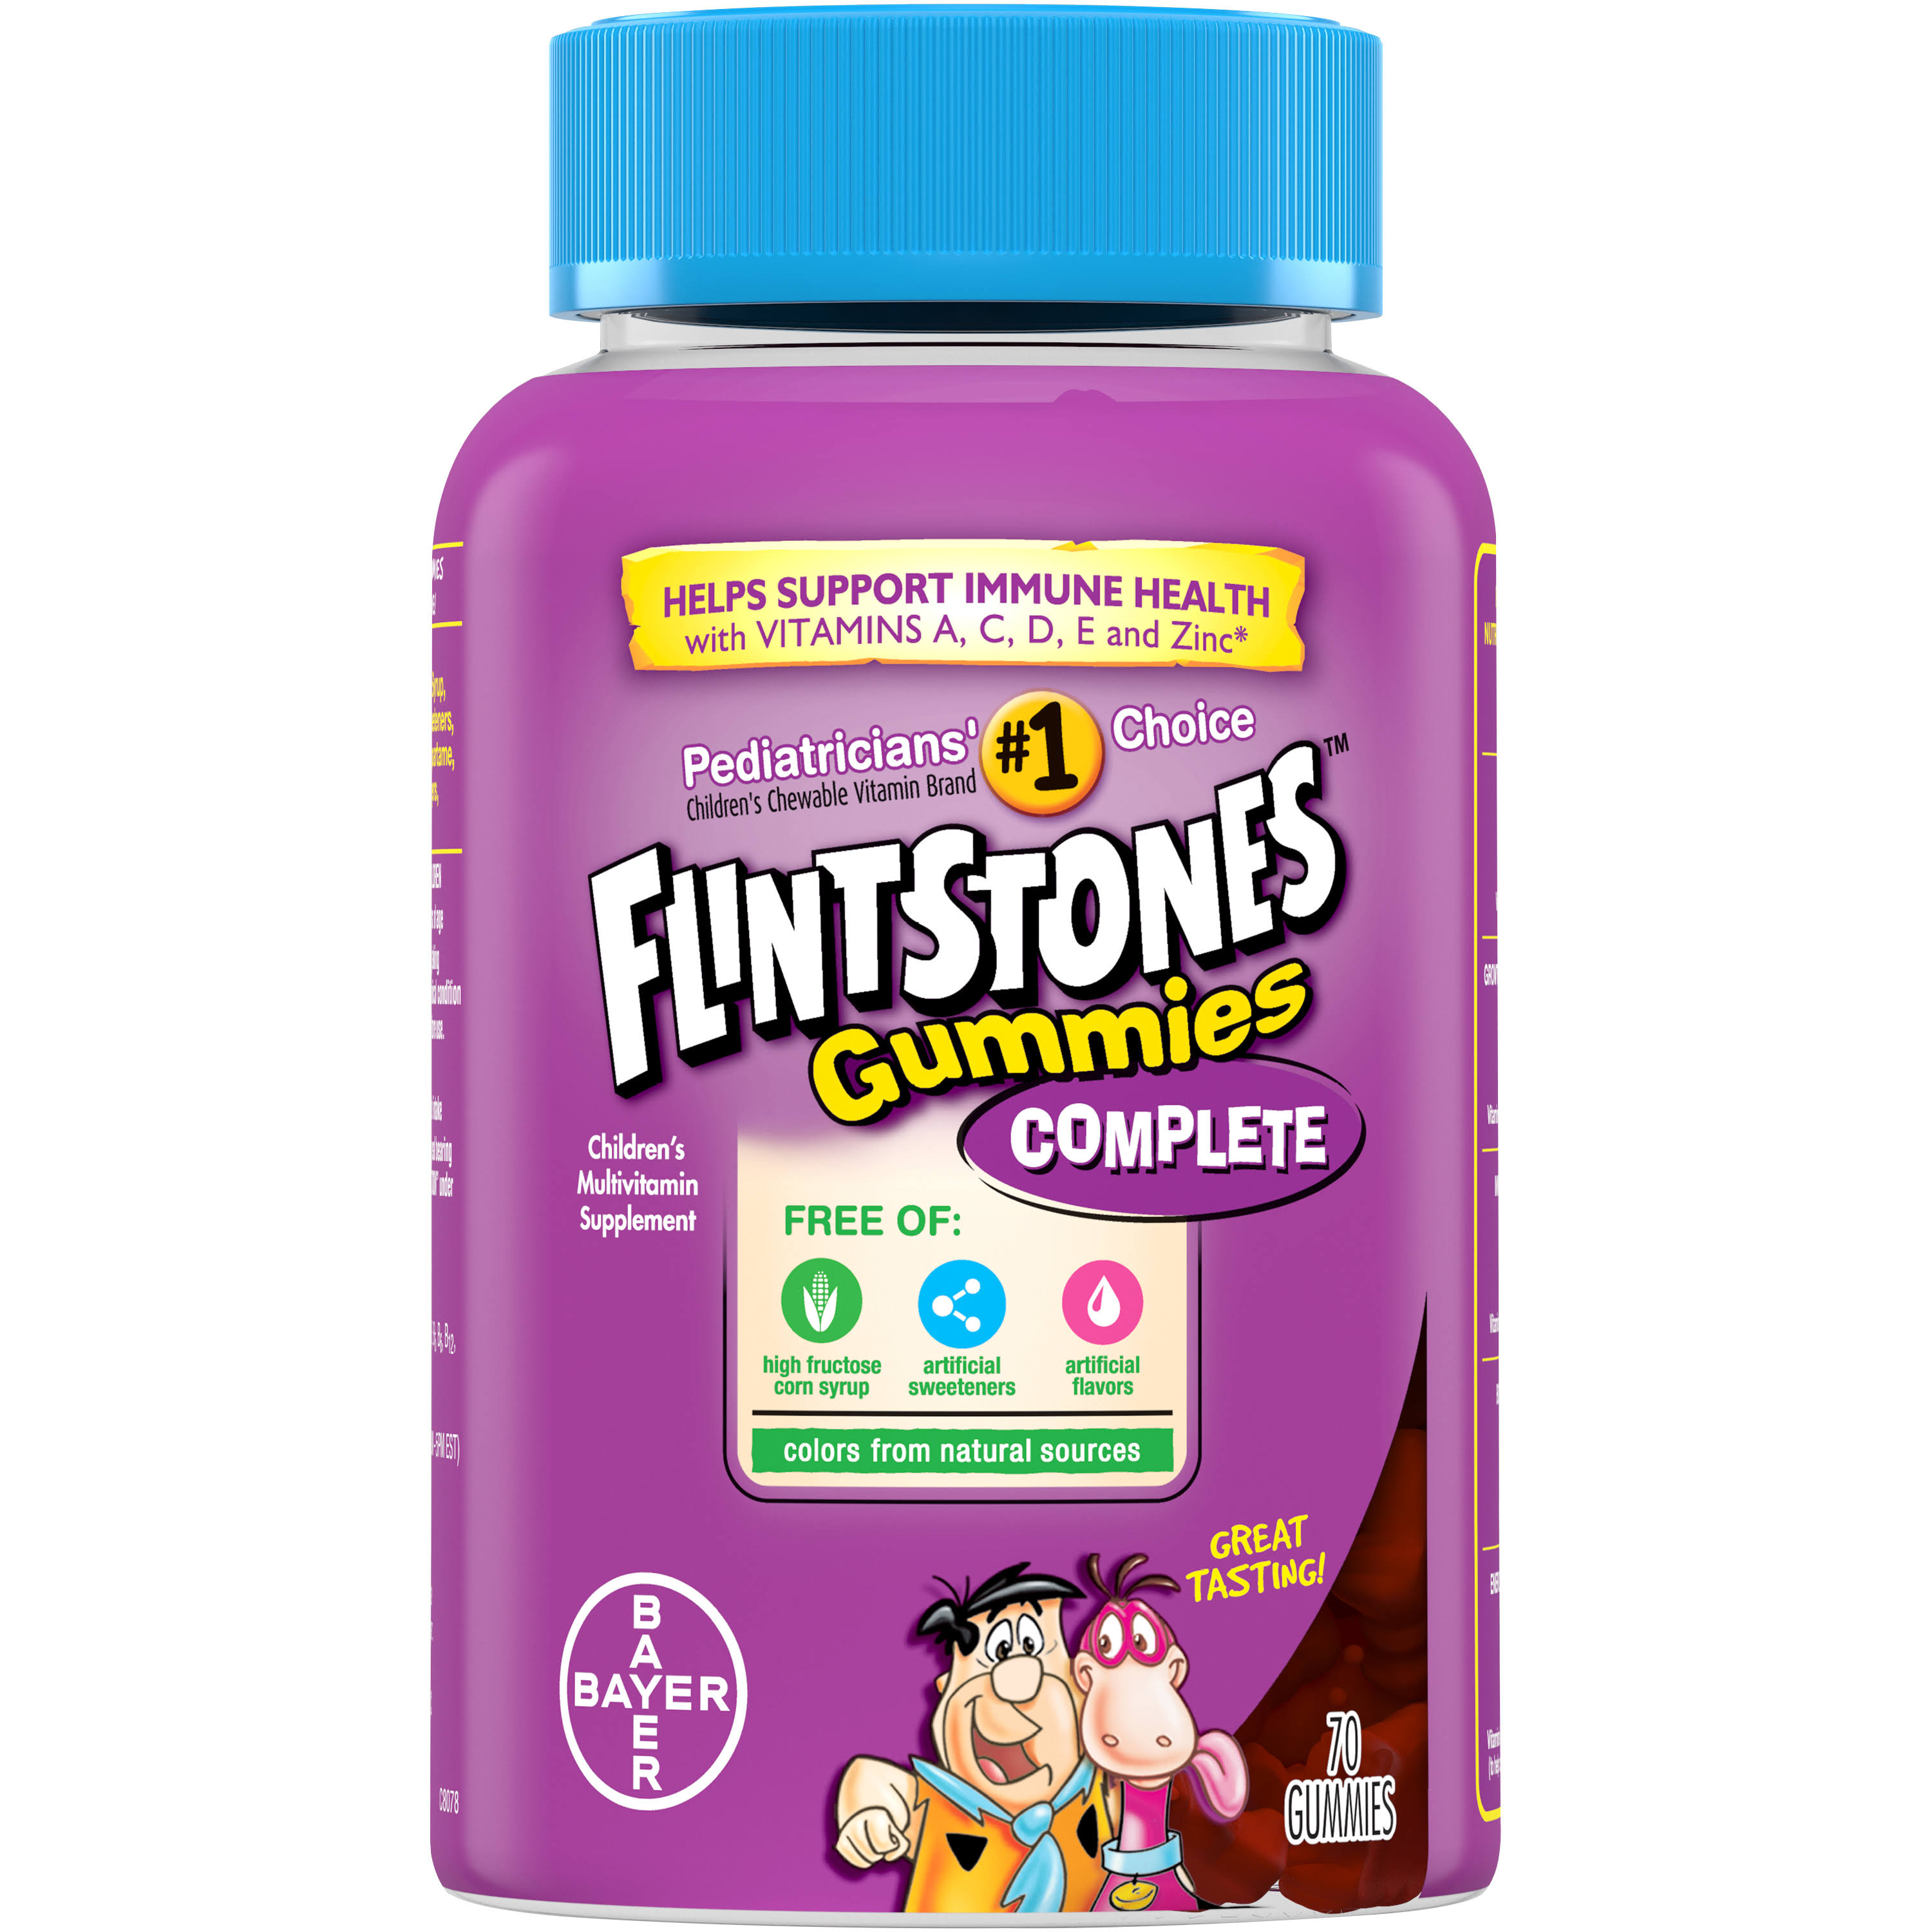 Flintstones Children's Multivitamin Complete Gummies Supplement - 70 Count